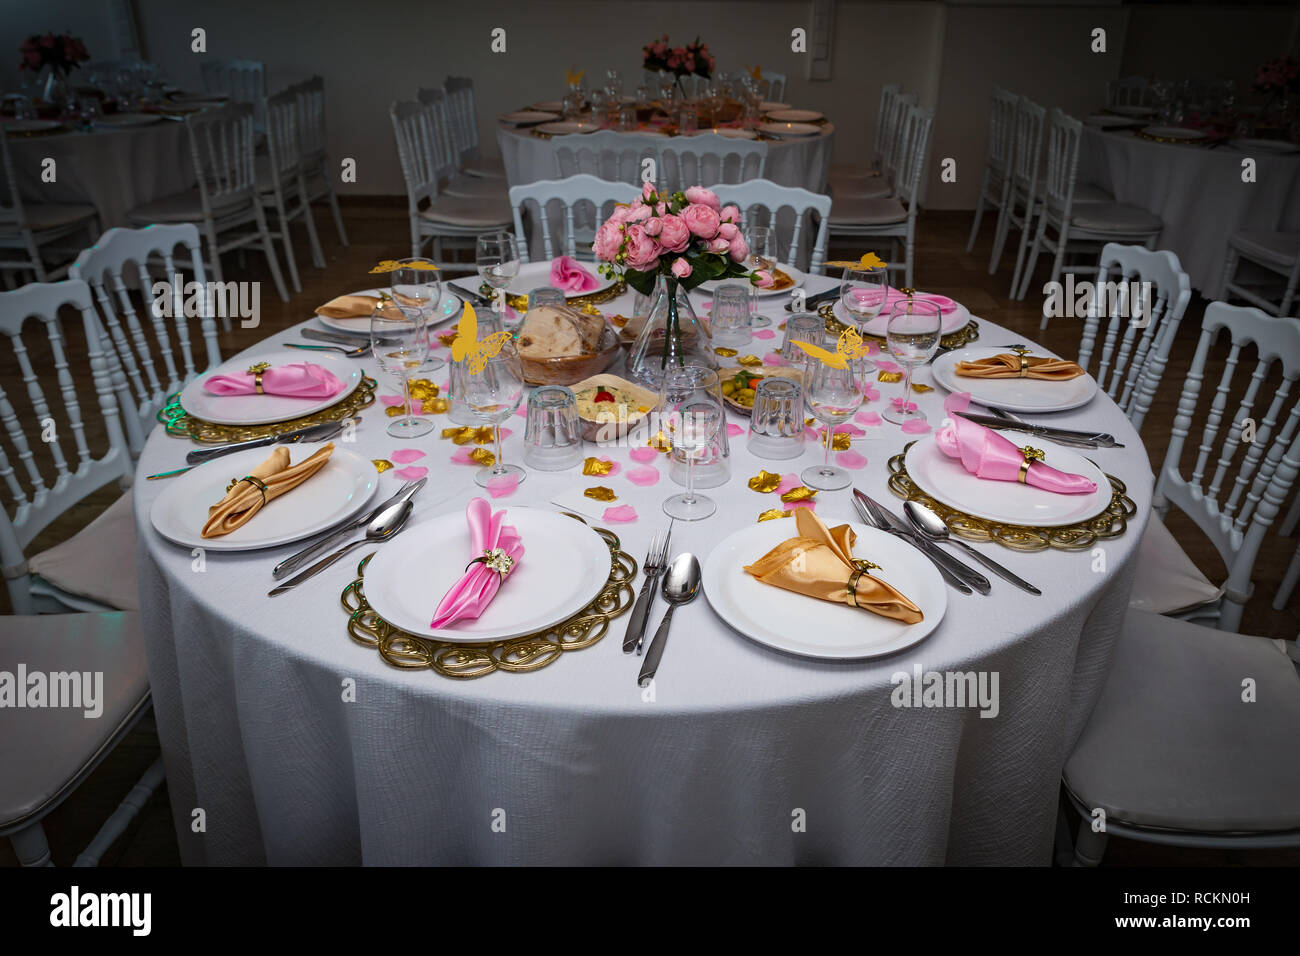 Arabic Iranian wedding table decoration - Stock Image